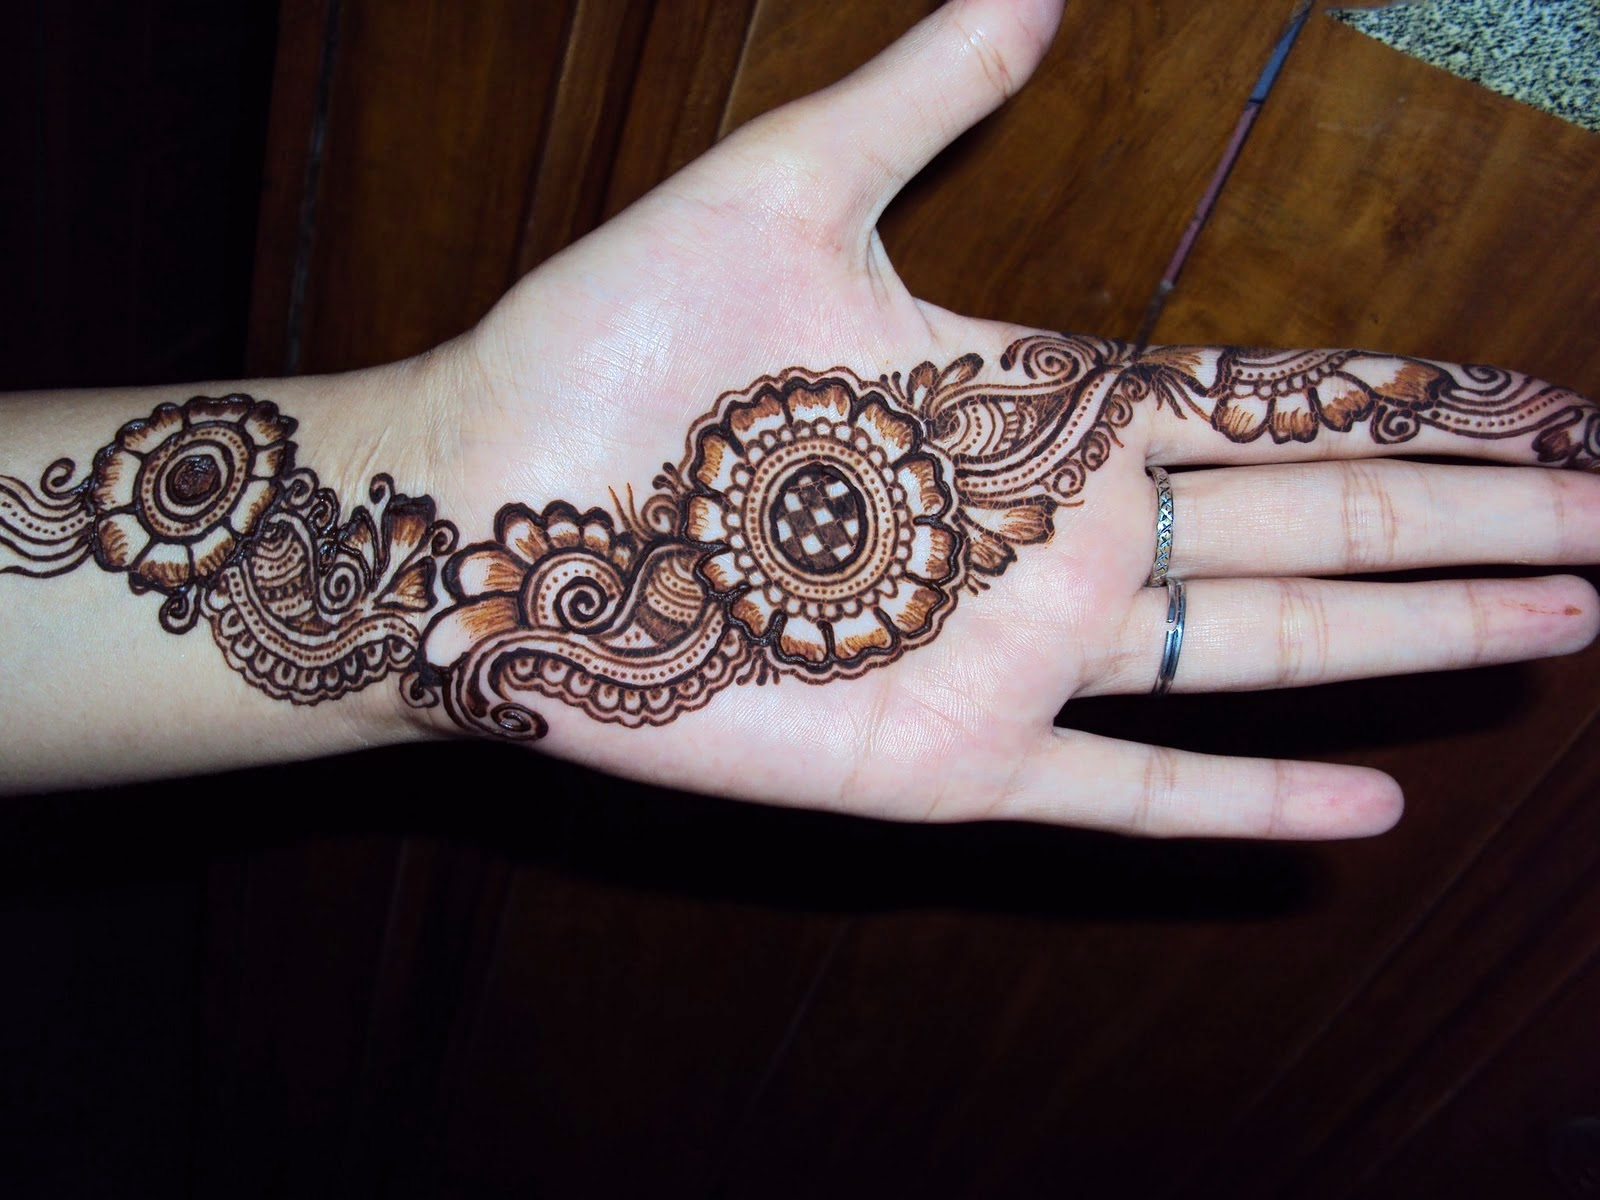 Arabic mehndi designs 2013 facebook - Best Mehndi Designs Designs Of Mehndi 2014 For Eid On Foot Simple Dresses On Hands On Facebook Arabic Style For Fingers